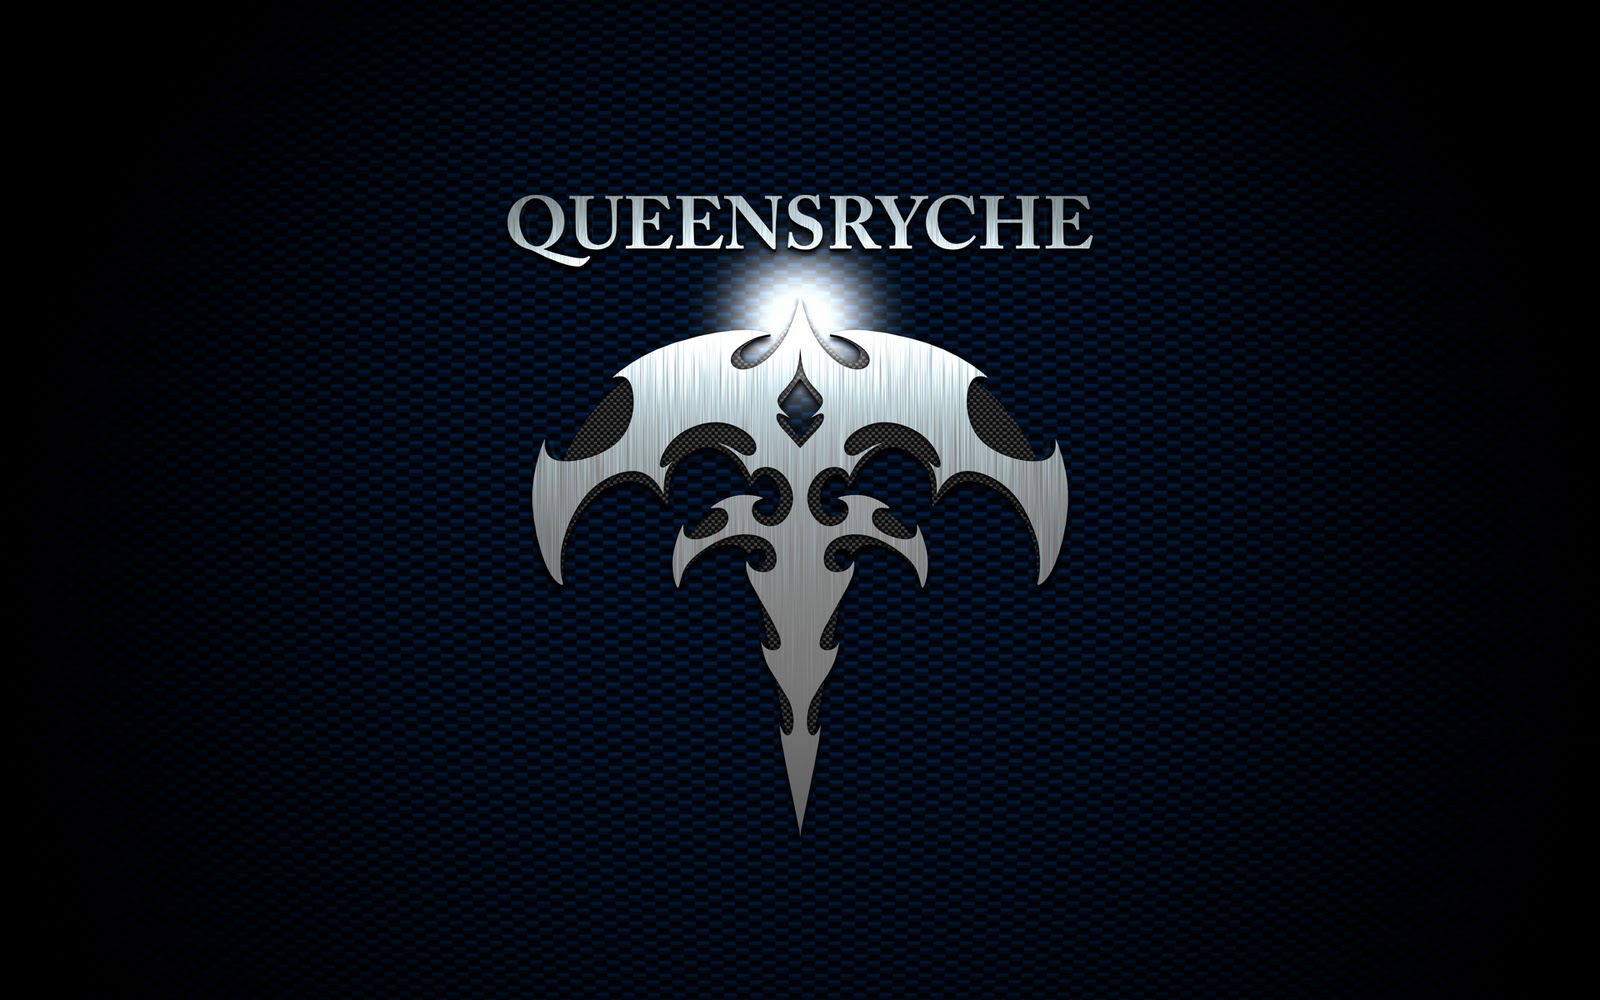 QUEENSRYCHE The Killing WordsQueensryche Logo